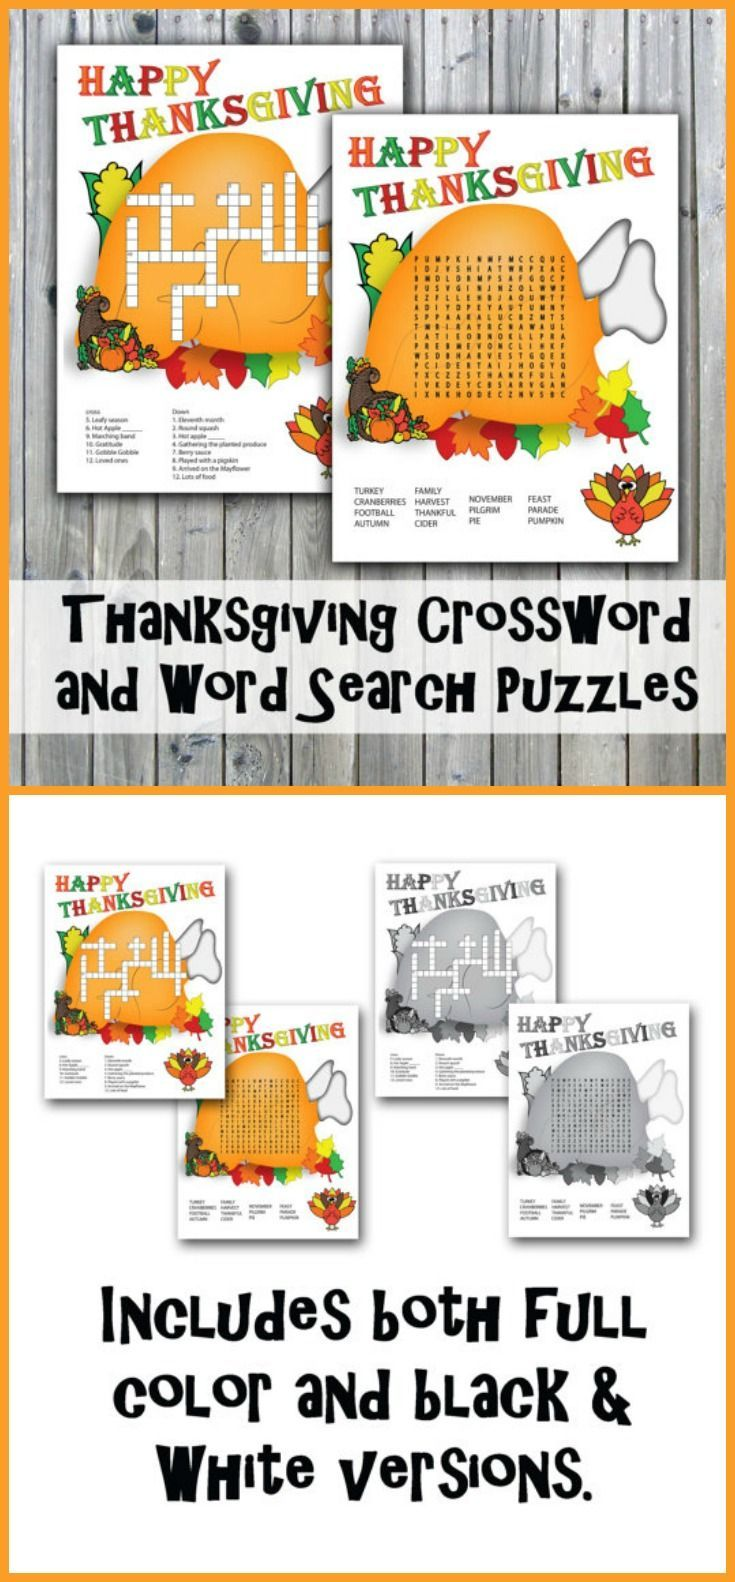 Game with shapes of different colors crossword - Thanksgiving Crossword Puzzle And Word Search Party Game Printables Instant Download Affiliatelink